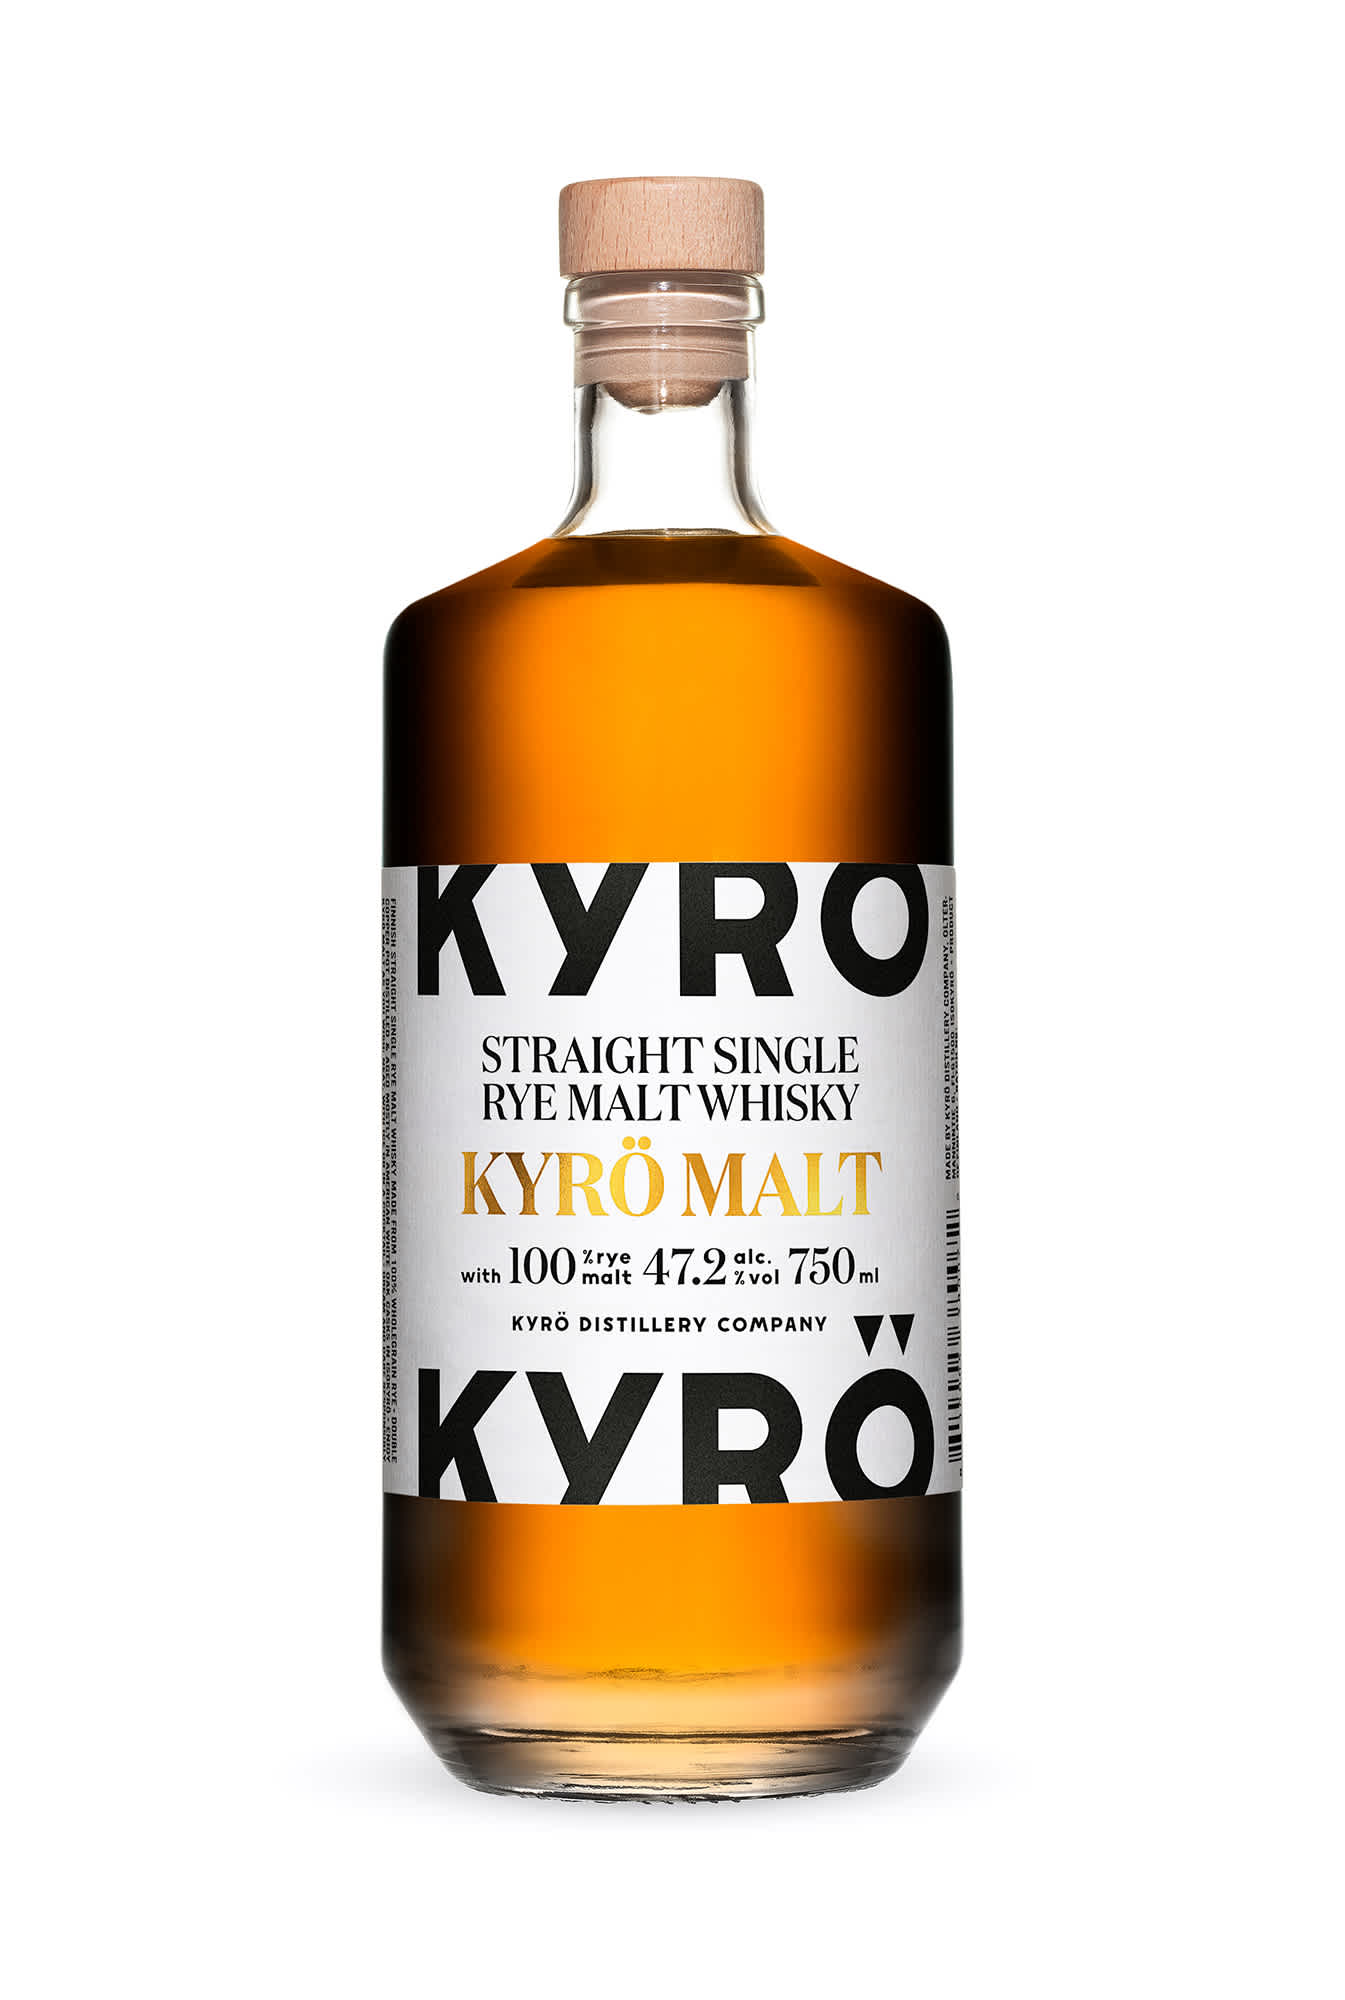 750 ml Bottle of Finnish rye whisky, Kyrö Malt.